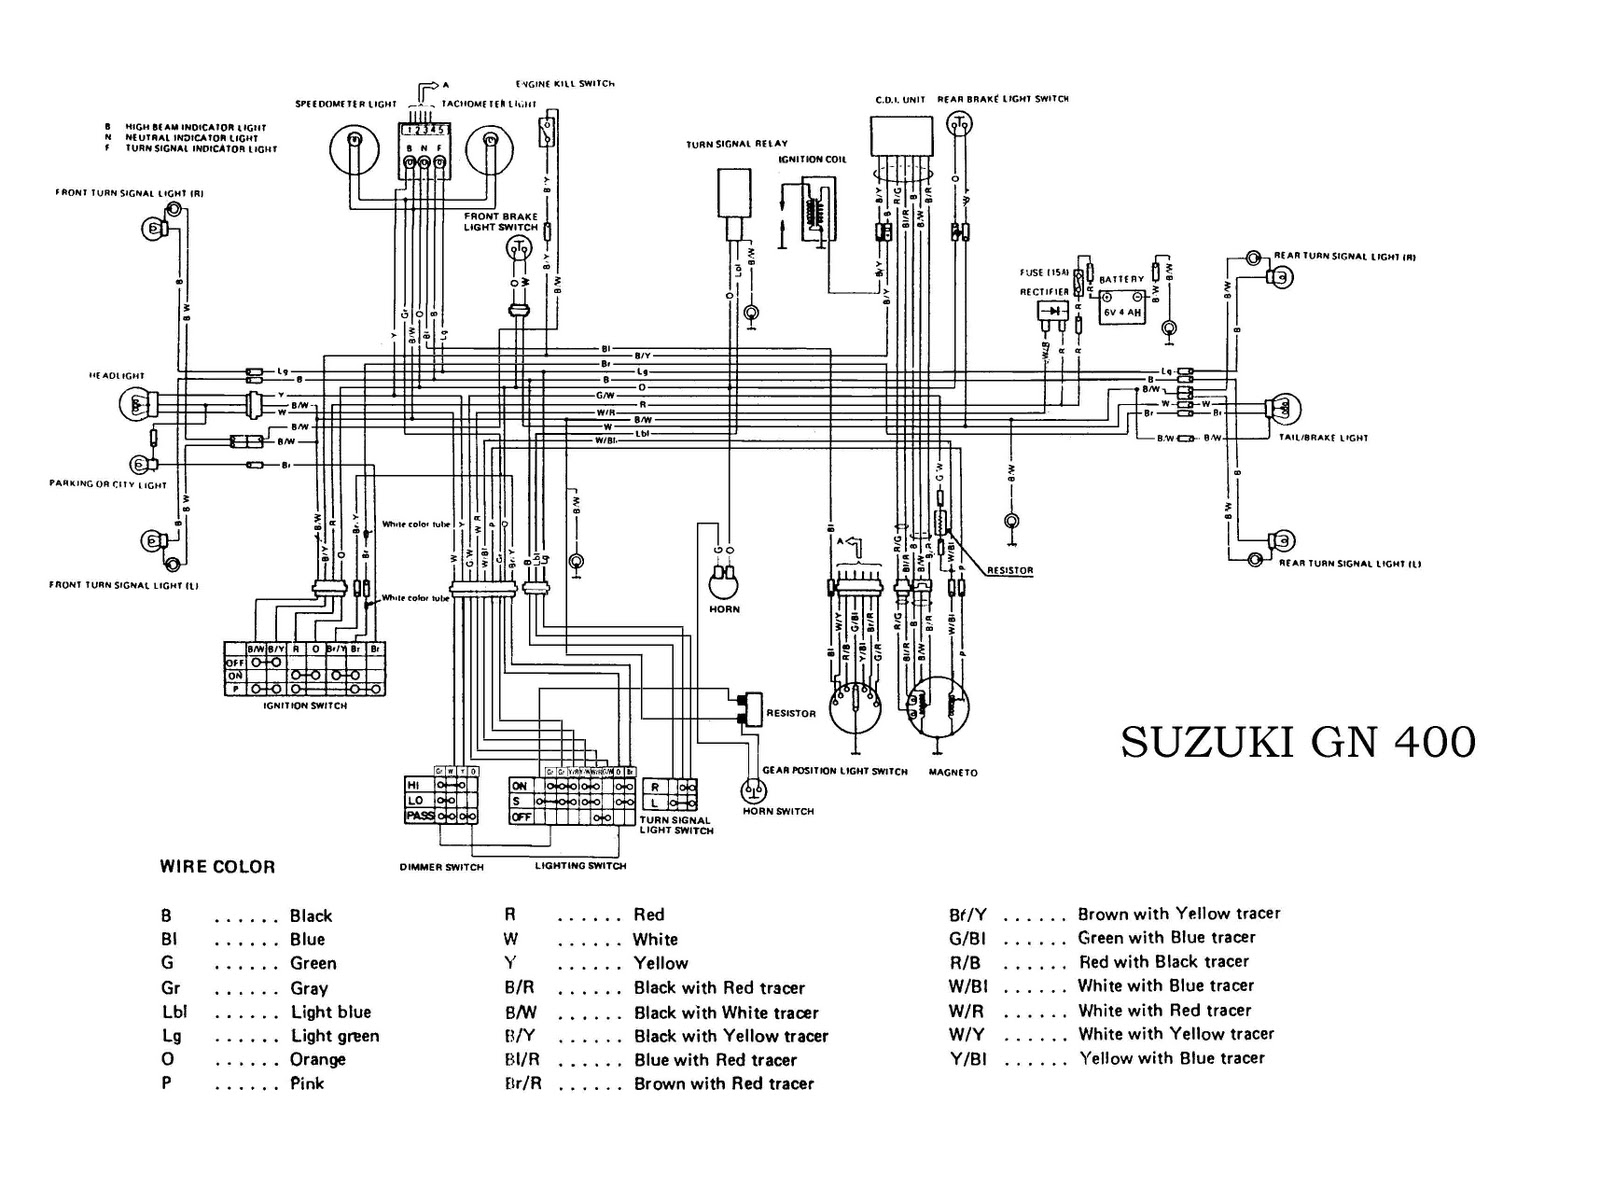 suzuki gn400 electrical wiring diagram